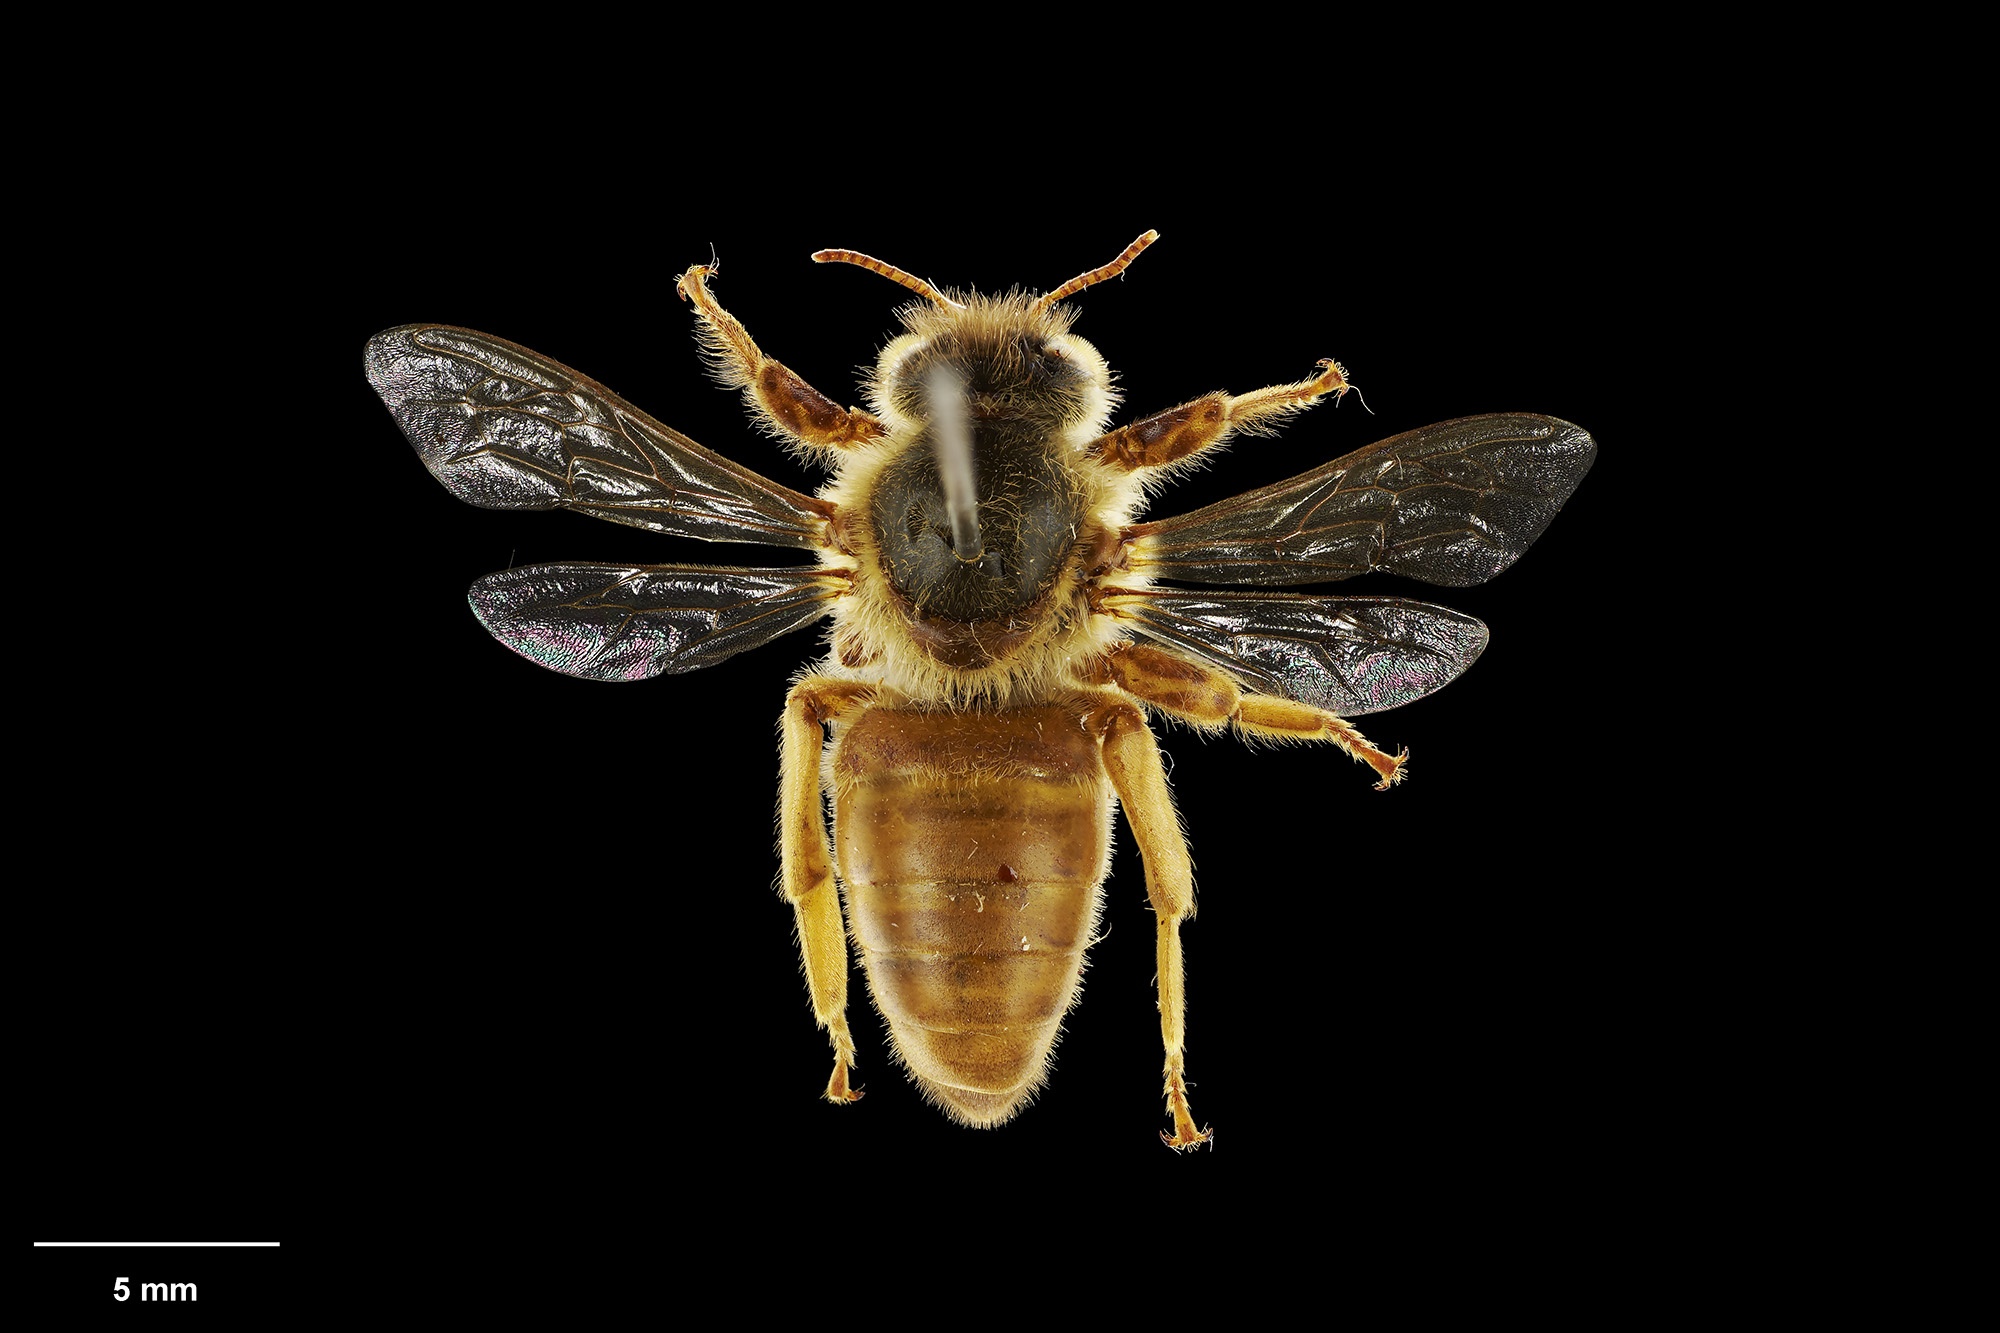 A pinned bee on a black background